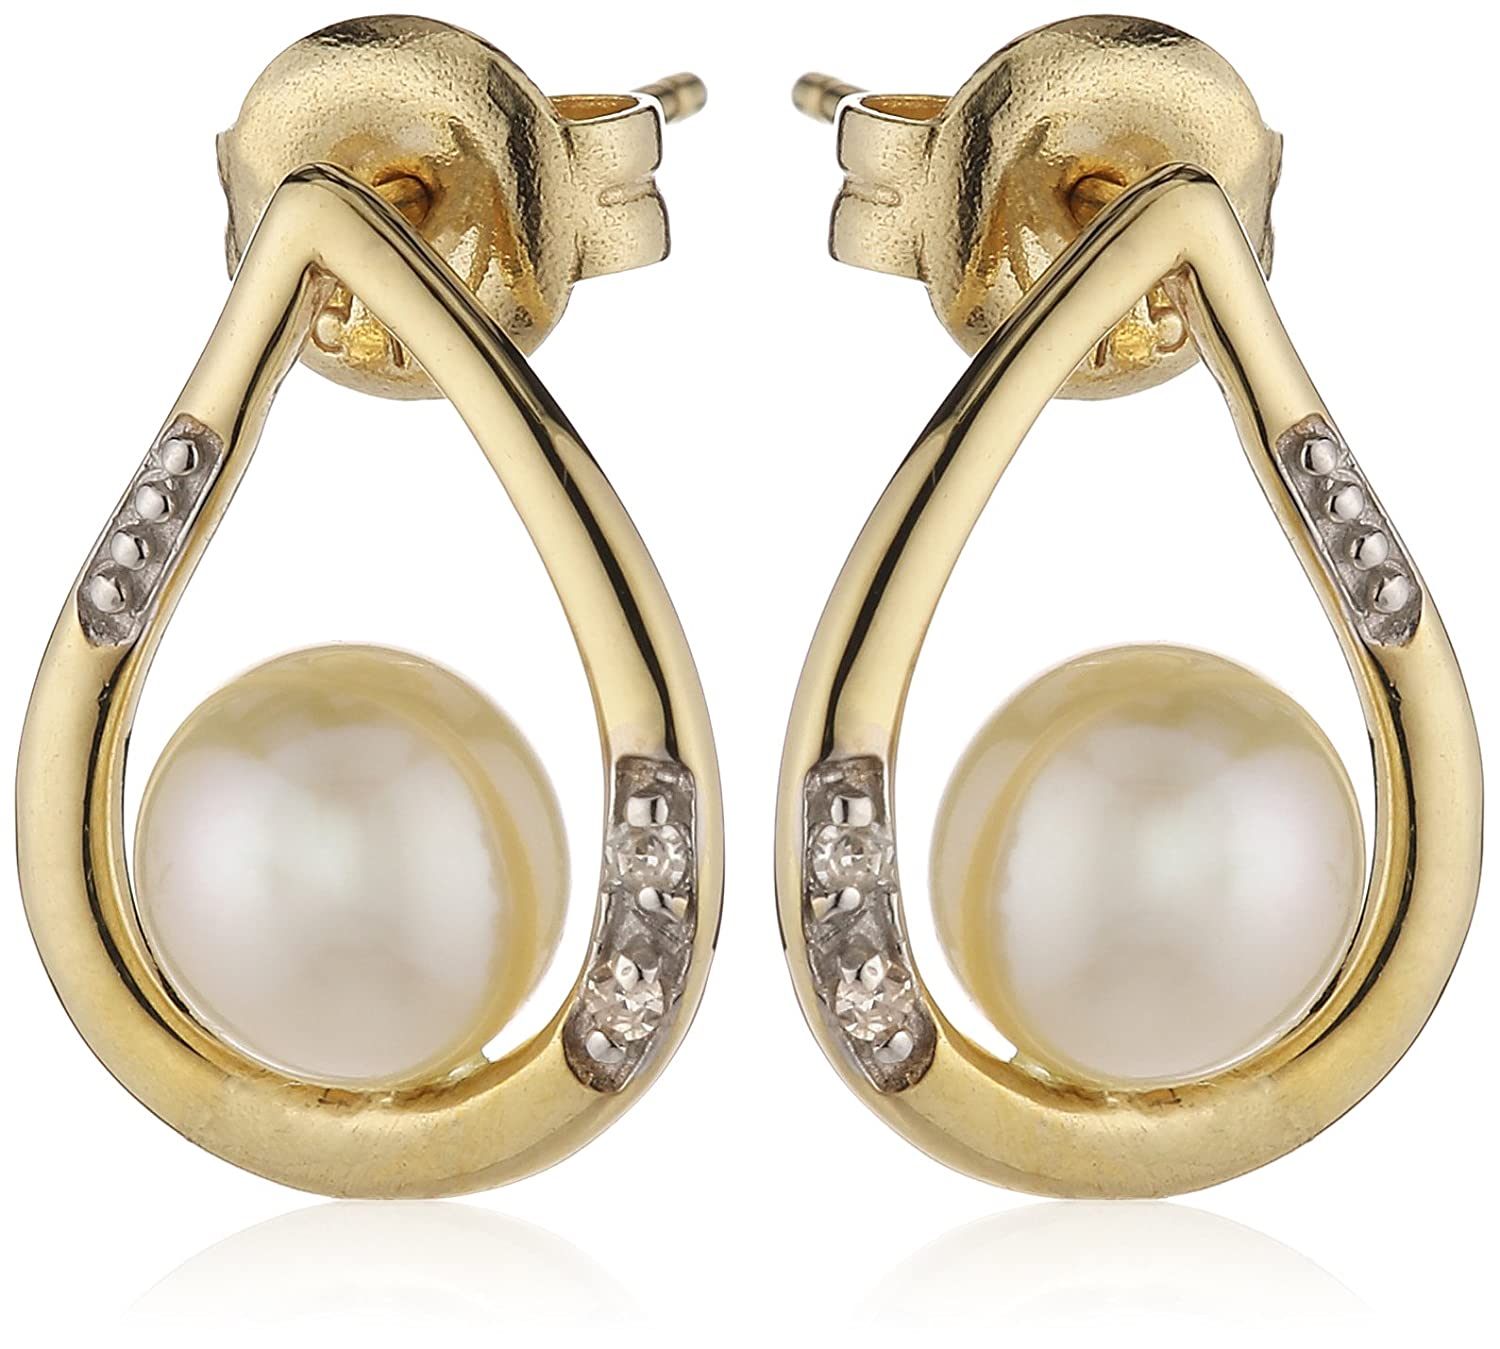 MiChic Premium 9ct Gold Diamond and Freshwater Pearl Earrings